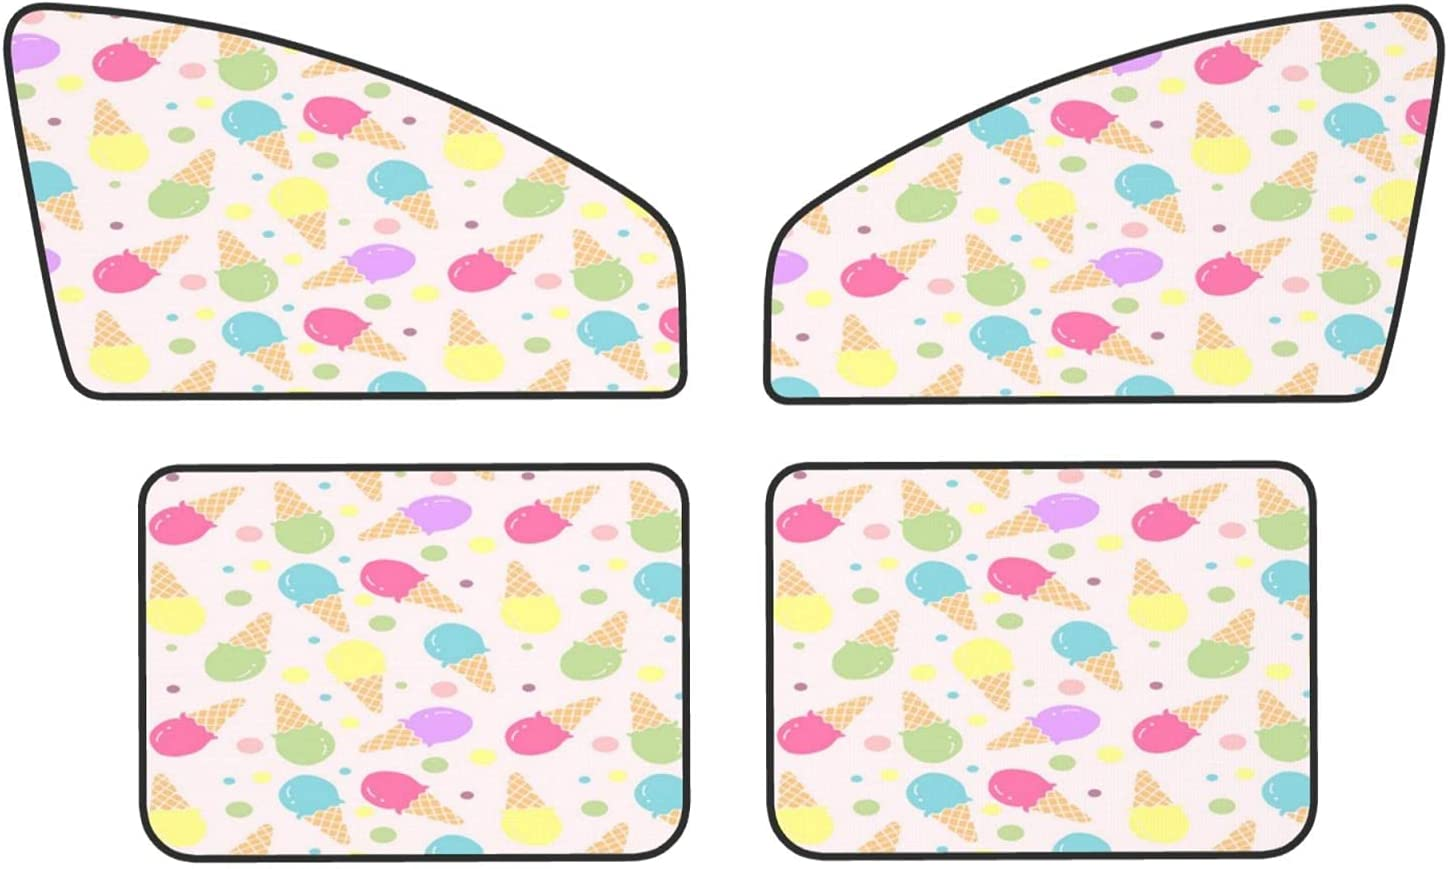 Ice-Cream Car Magnets Protect Covers Rear Fron Privacy Popular products Sunshades New products, world's highest quality popular!